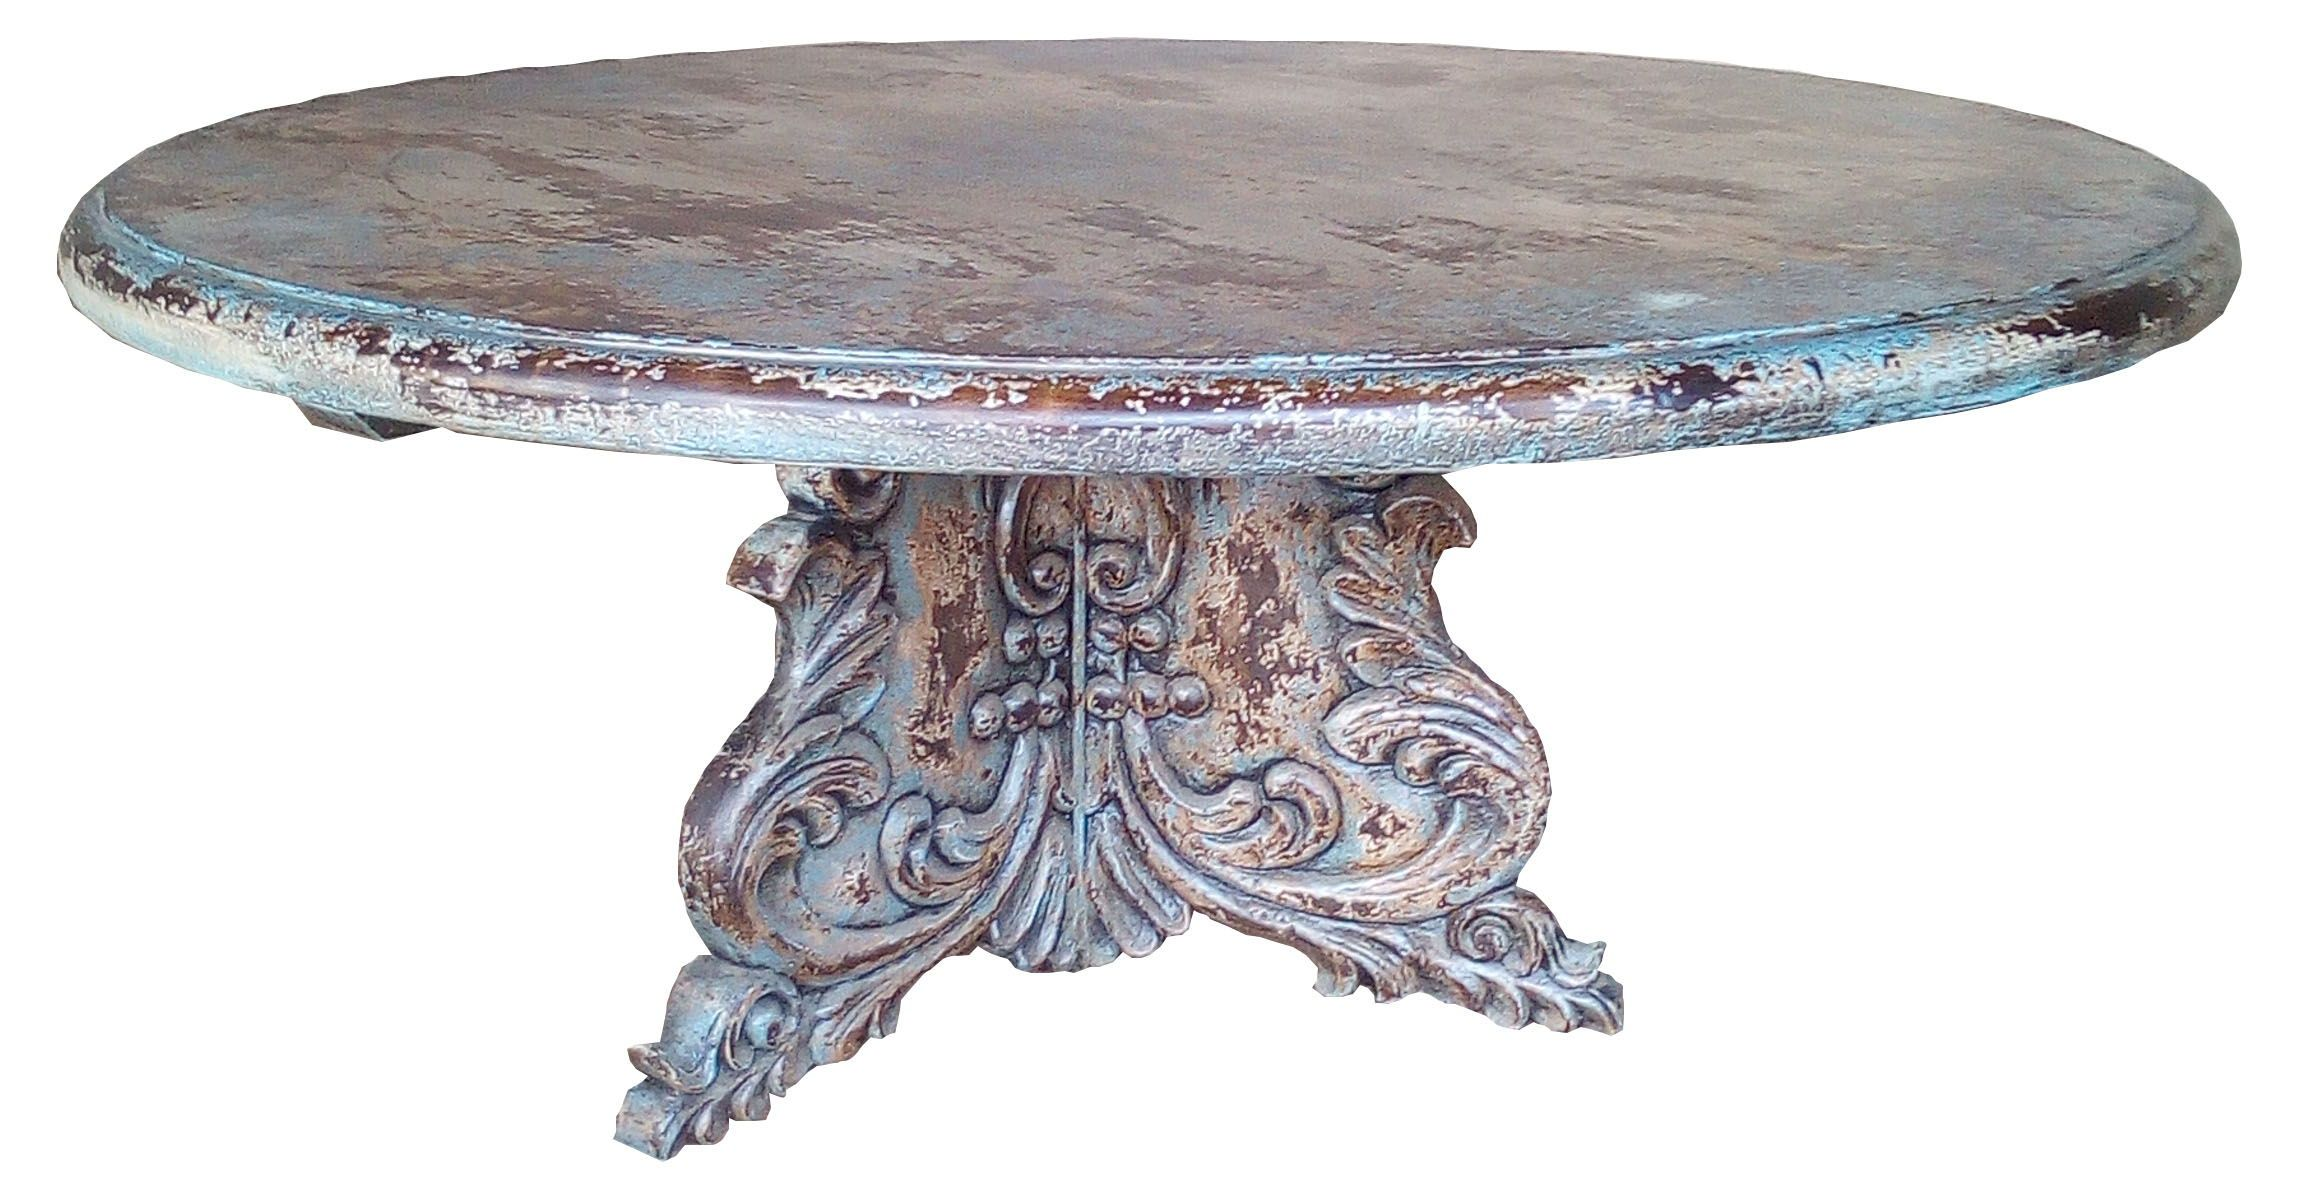 Mediterranean Style Round Dining Table With Hand Carved Bed Soft Blues Gray Colors And White Un Western Home Decor Elegant Furniture Mediterranean Home Decor [ 1200 x 2300 Pixel ]